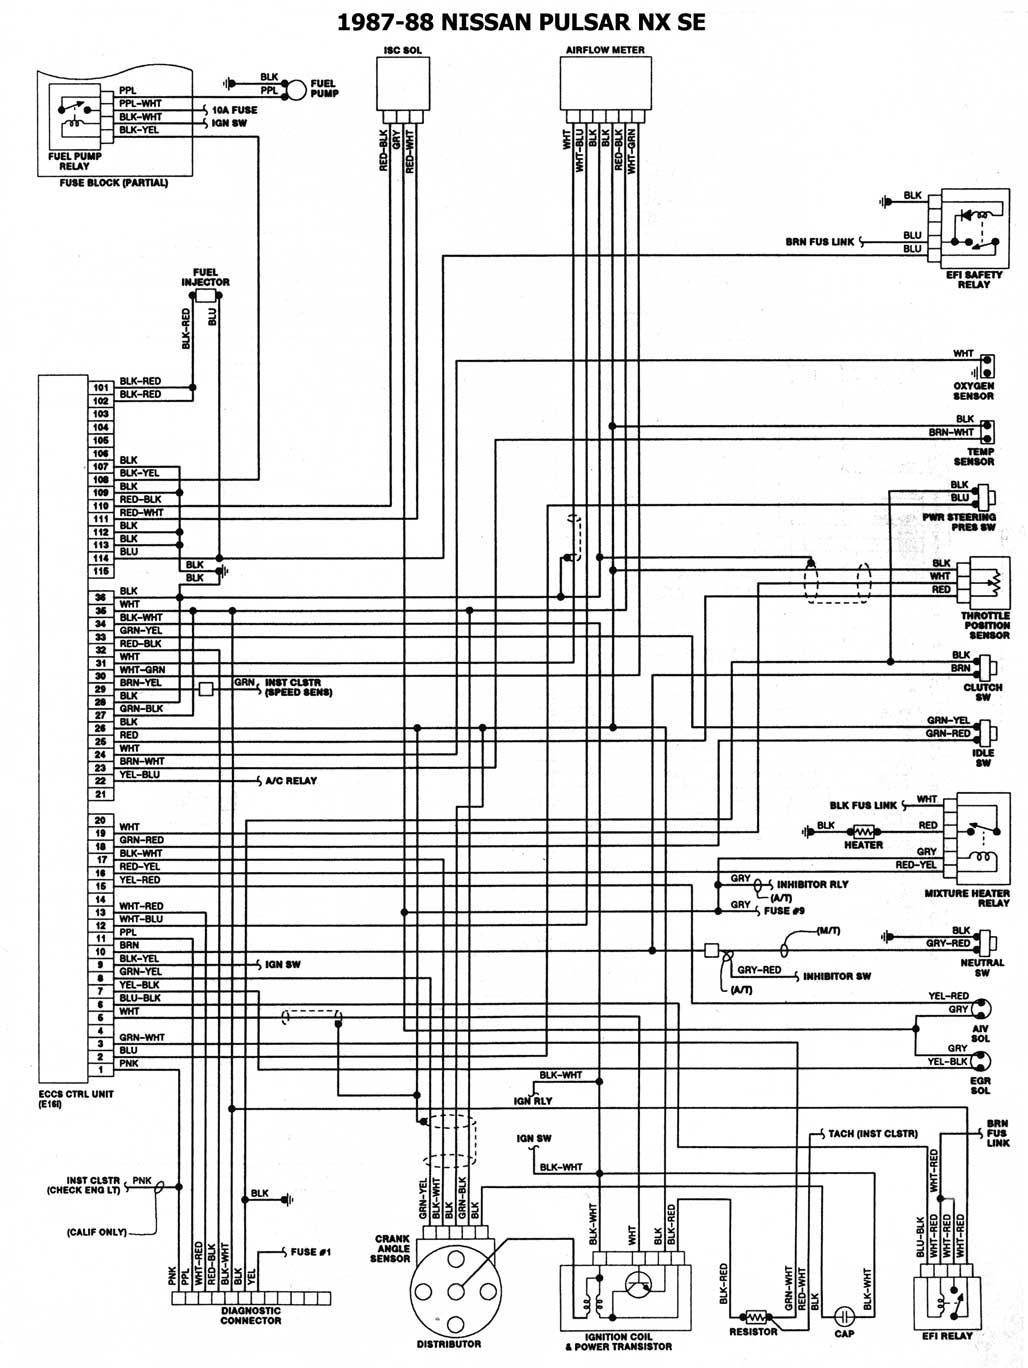 delphi delco radio wiring diagram delphi discover your wiring 84 fiero fuse box diagram